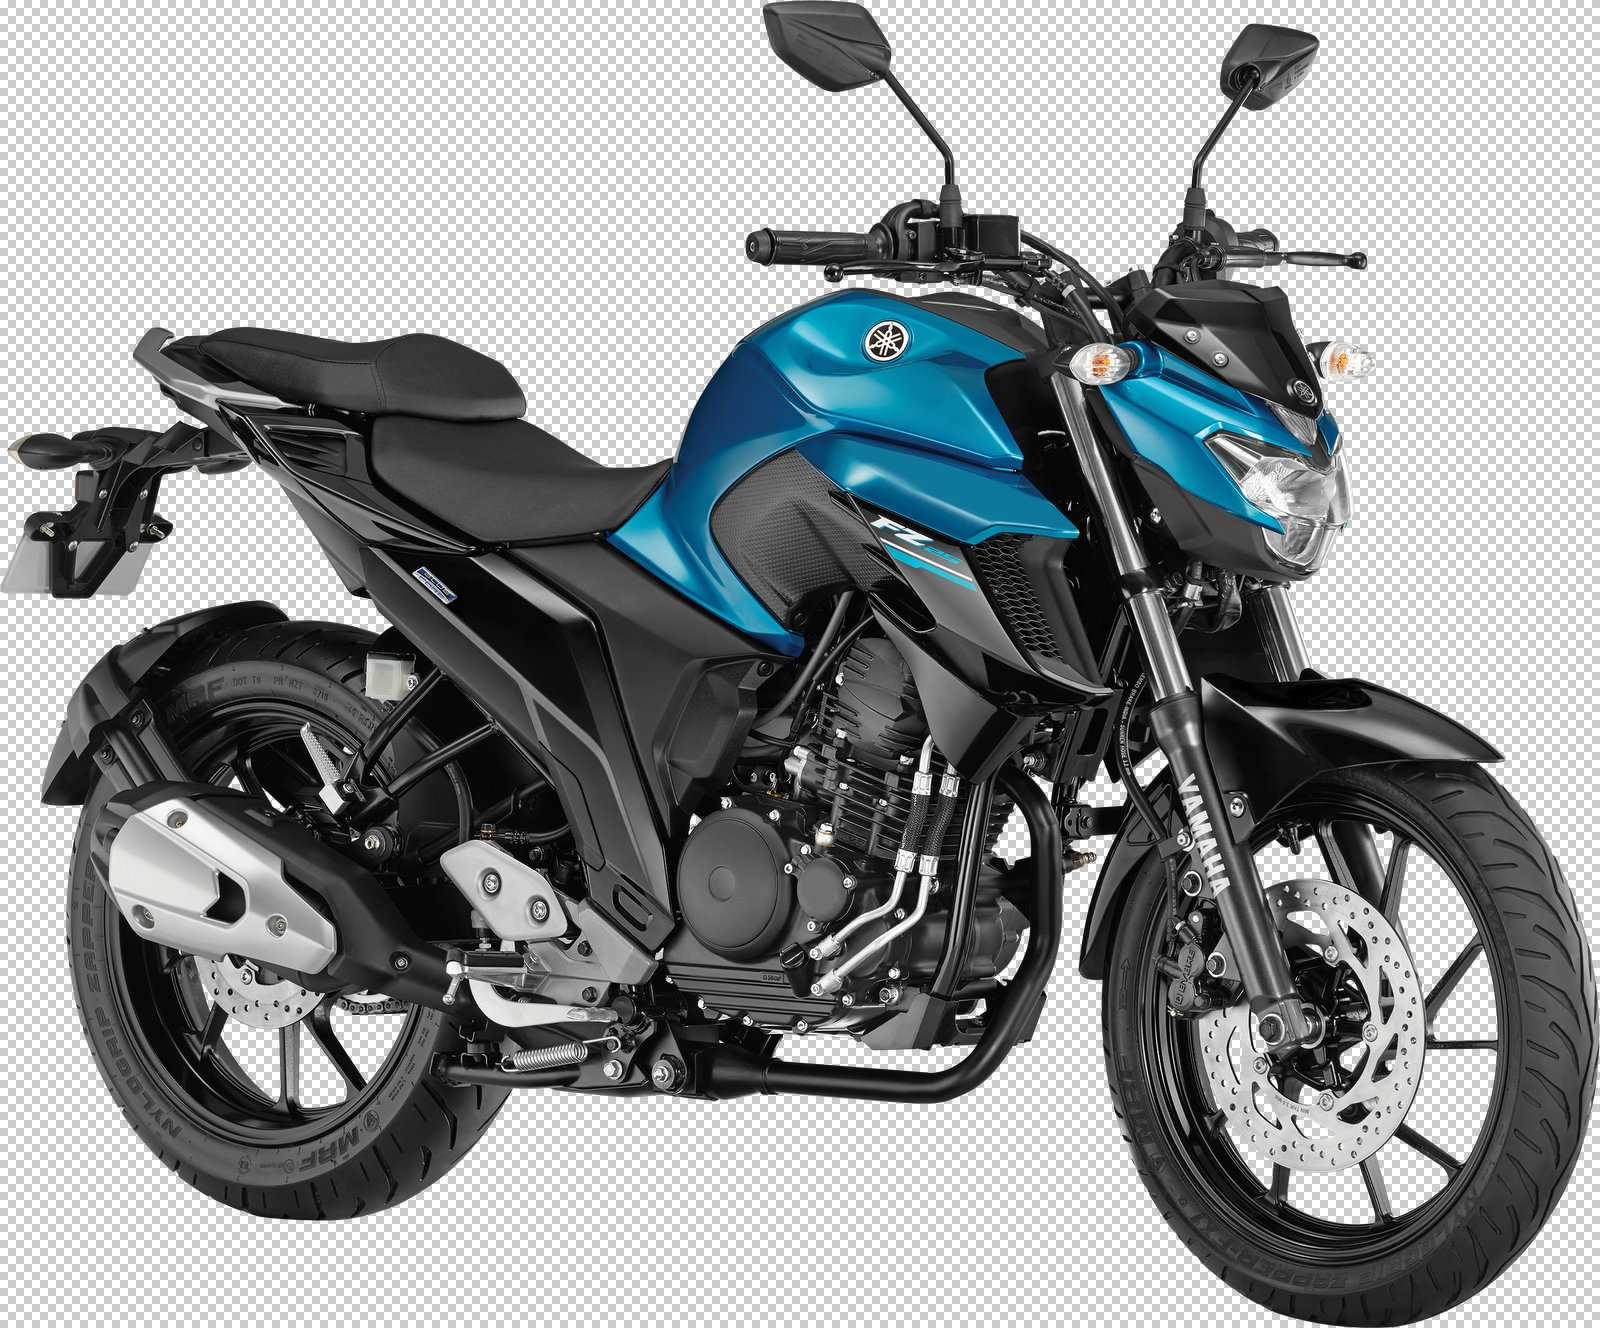 Yamaha Fz 25 Launched Rs 1 19 Lakh It S The Most Affordable 250cc In India